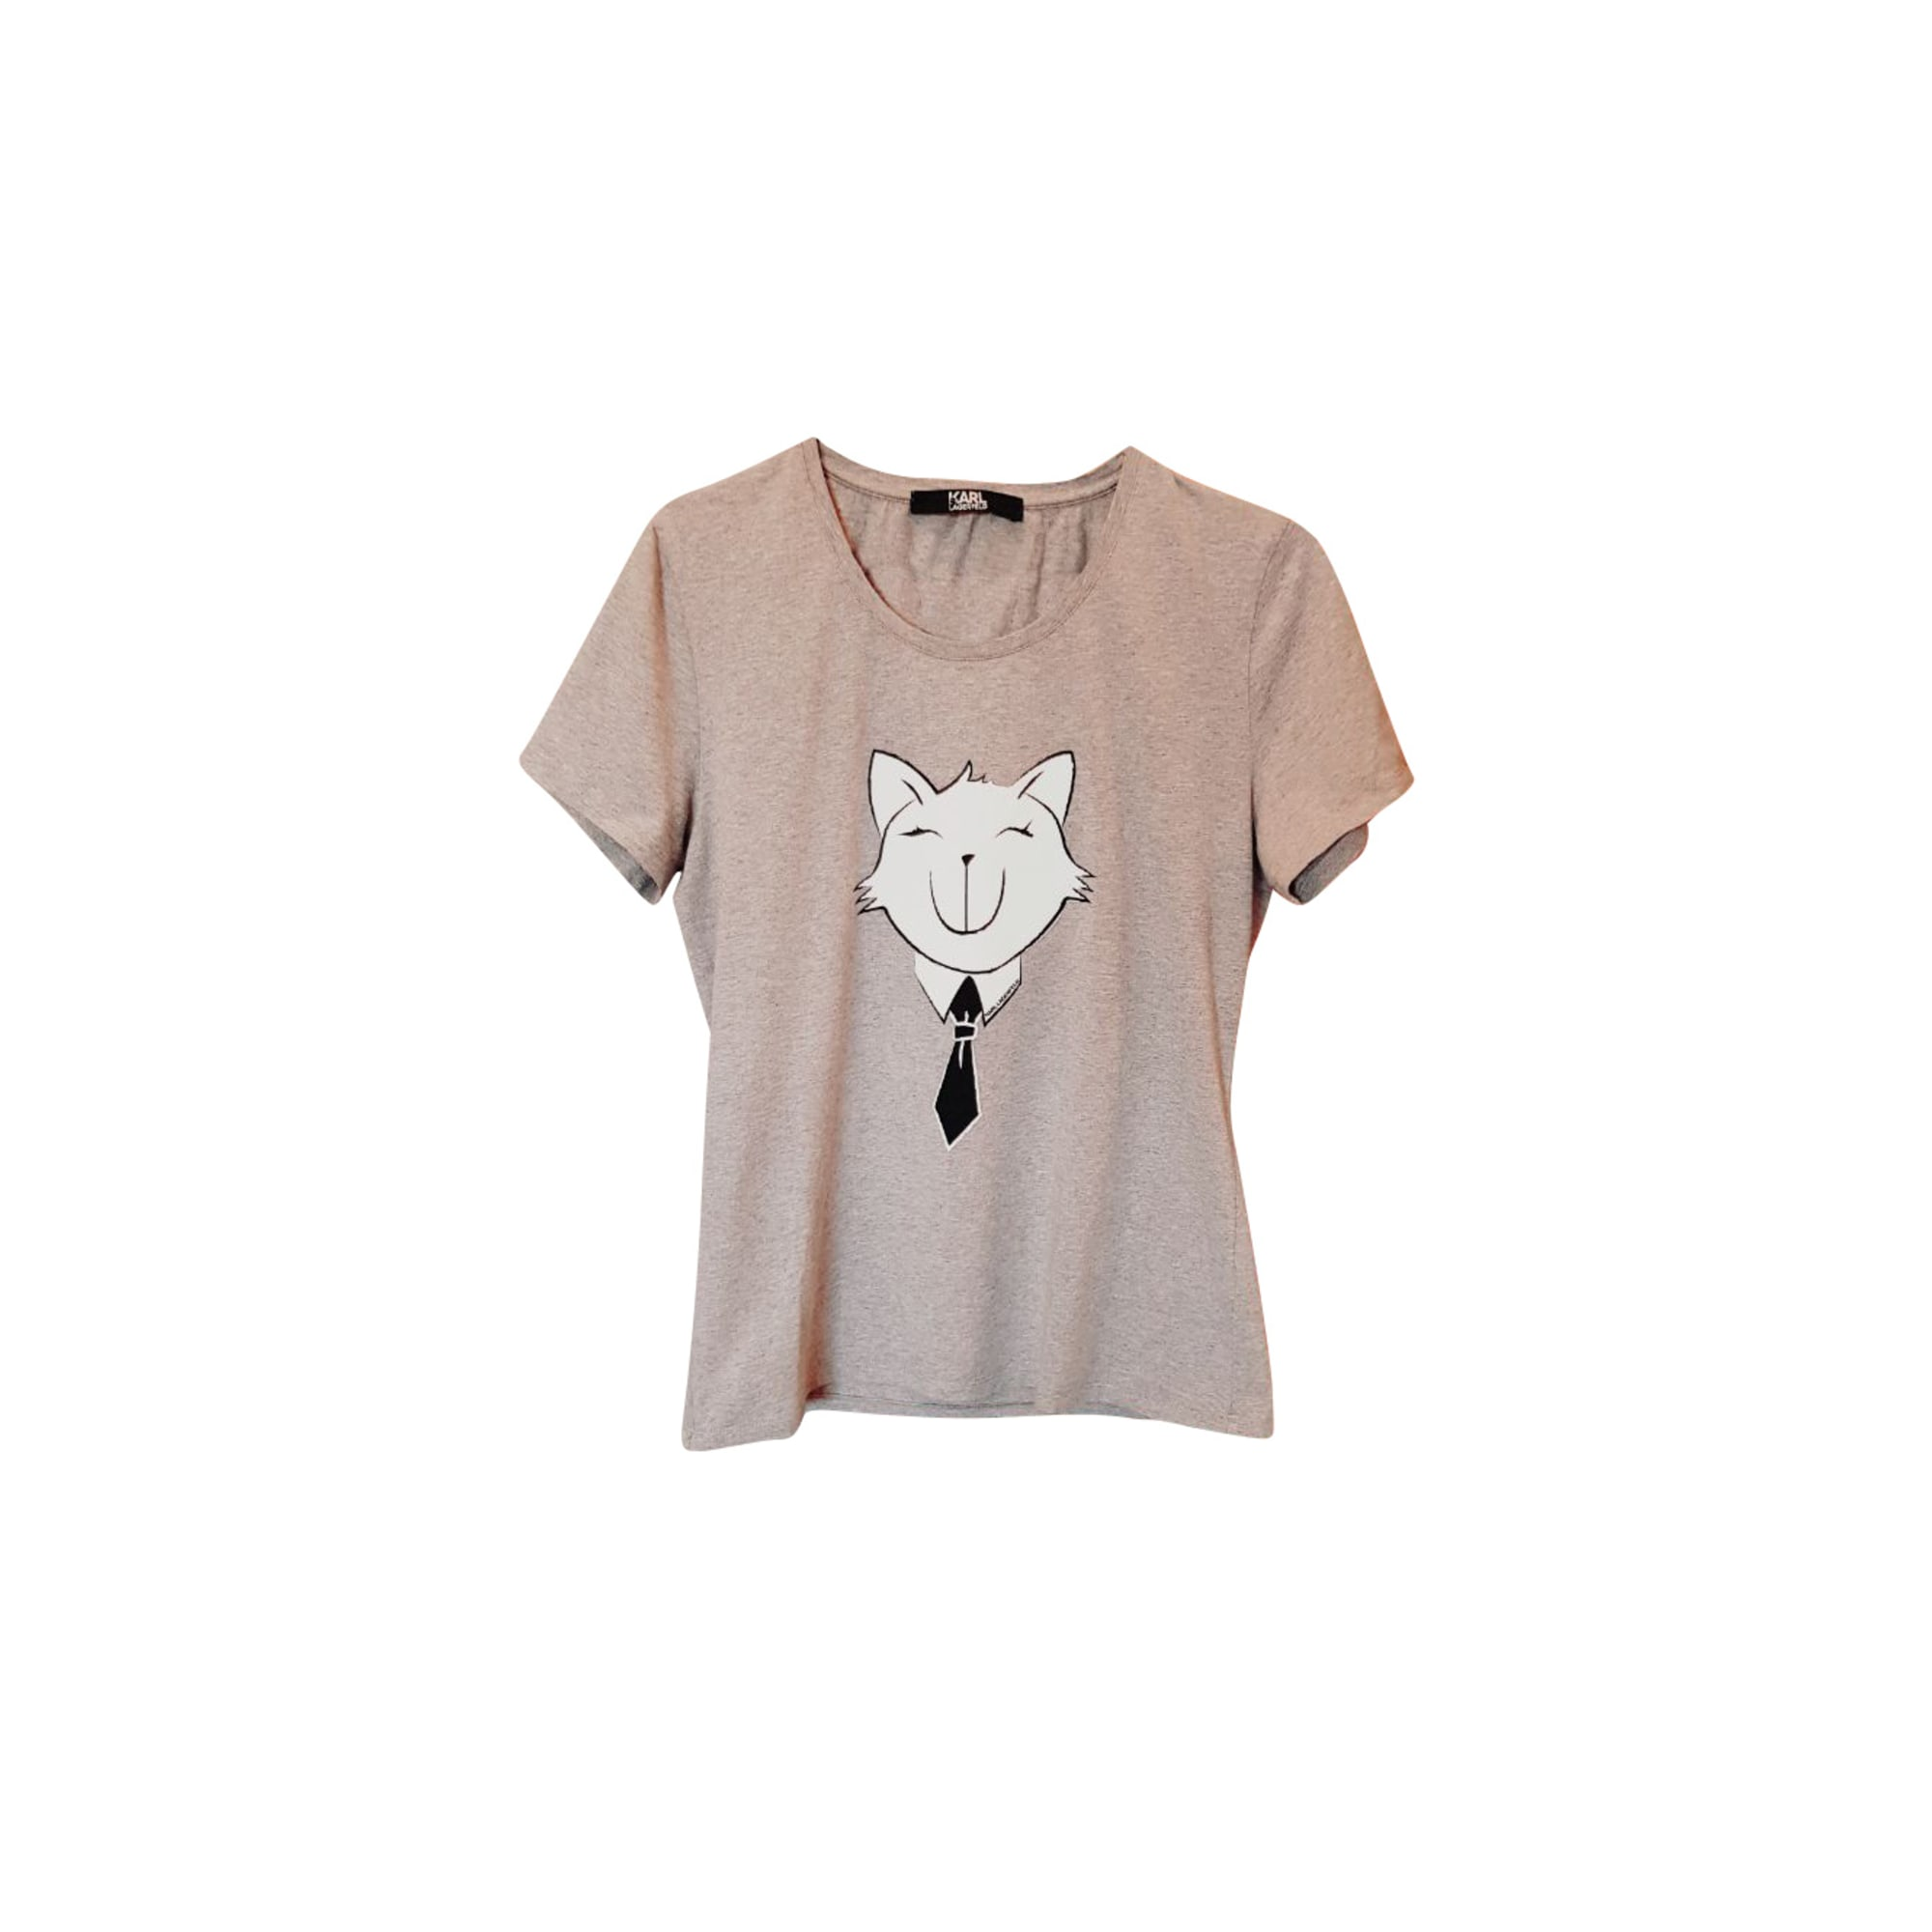 Top, tee-shirt KARL LAGERFELD Gris, anthracite